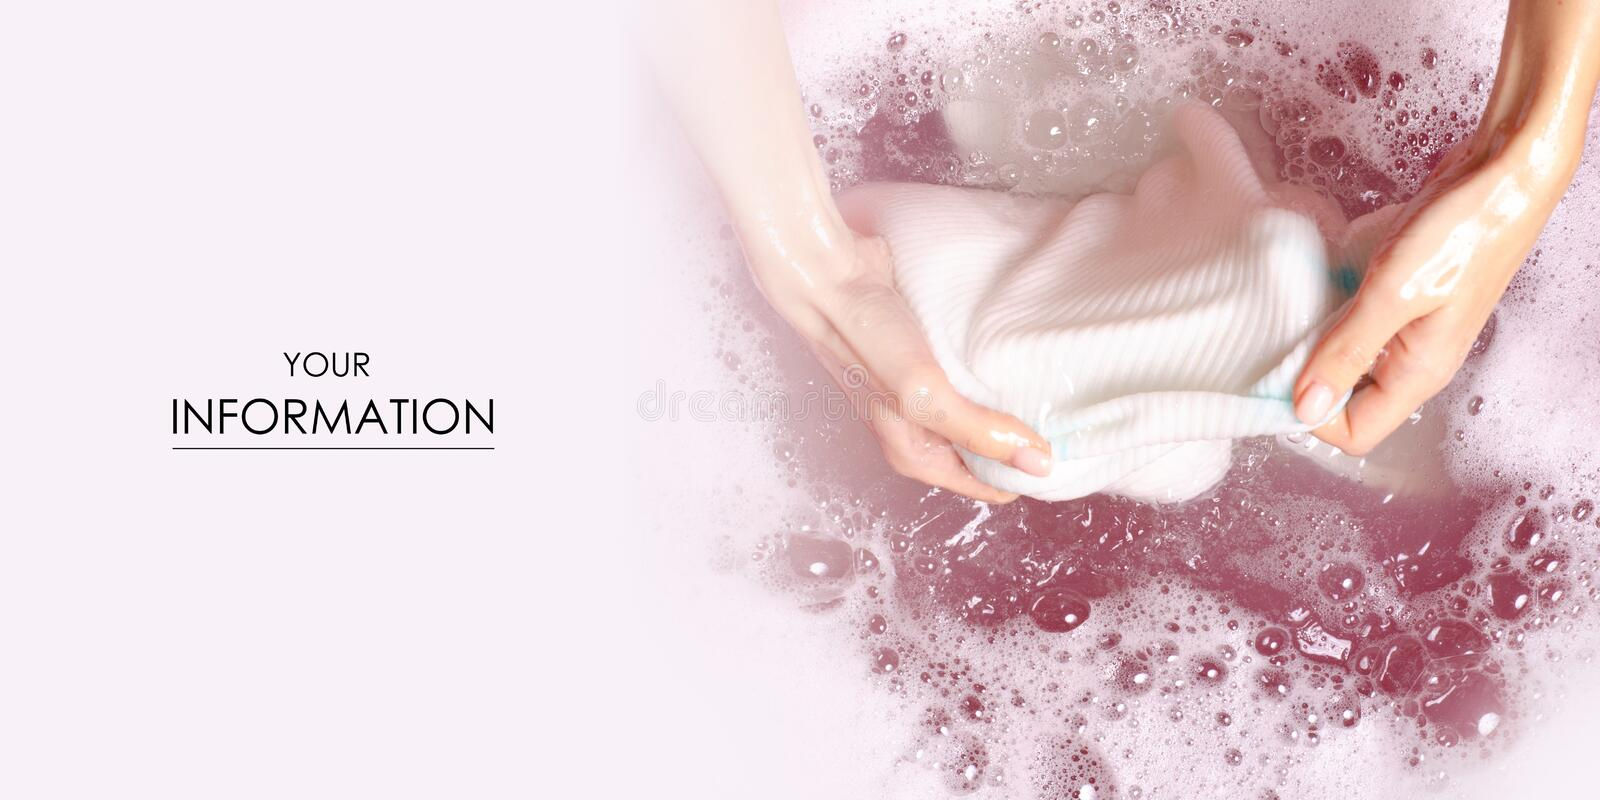 Women washing white sweater clothes in basin enemale powdered detergent pattern royalty free stock images